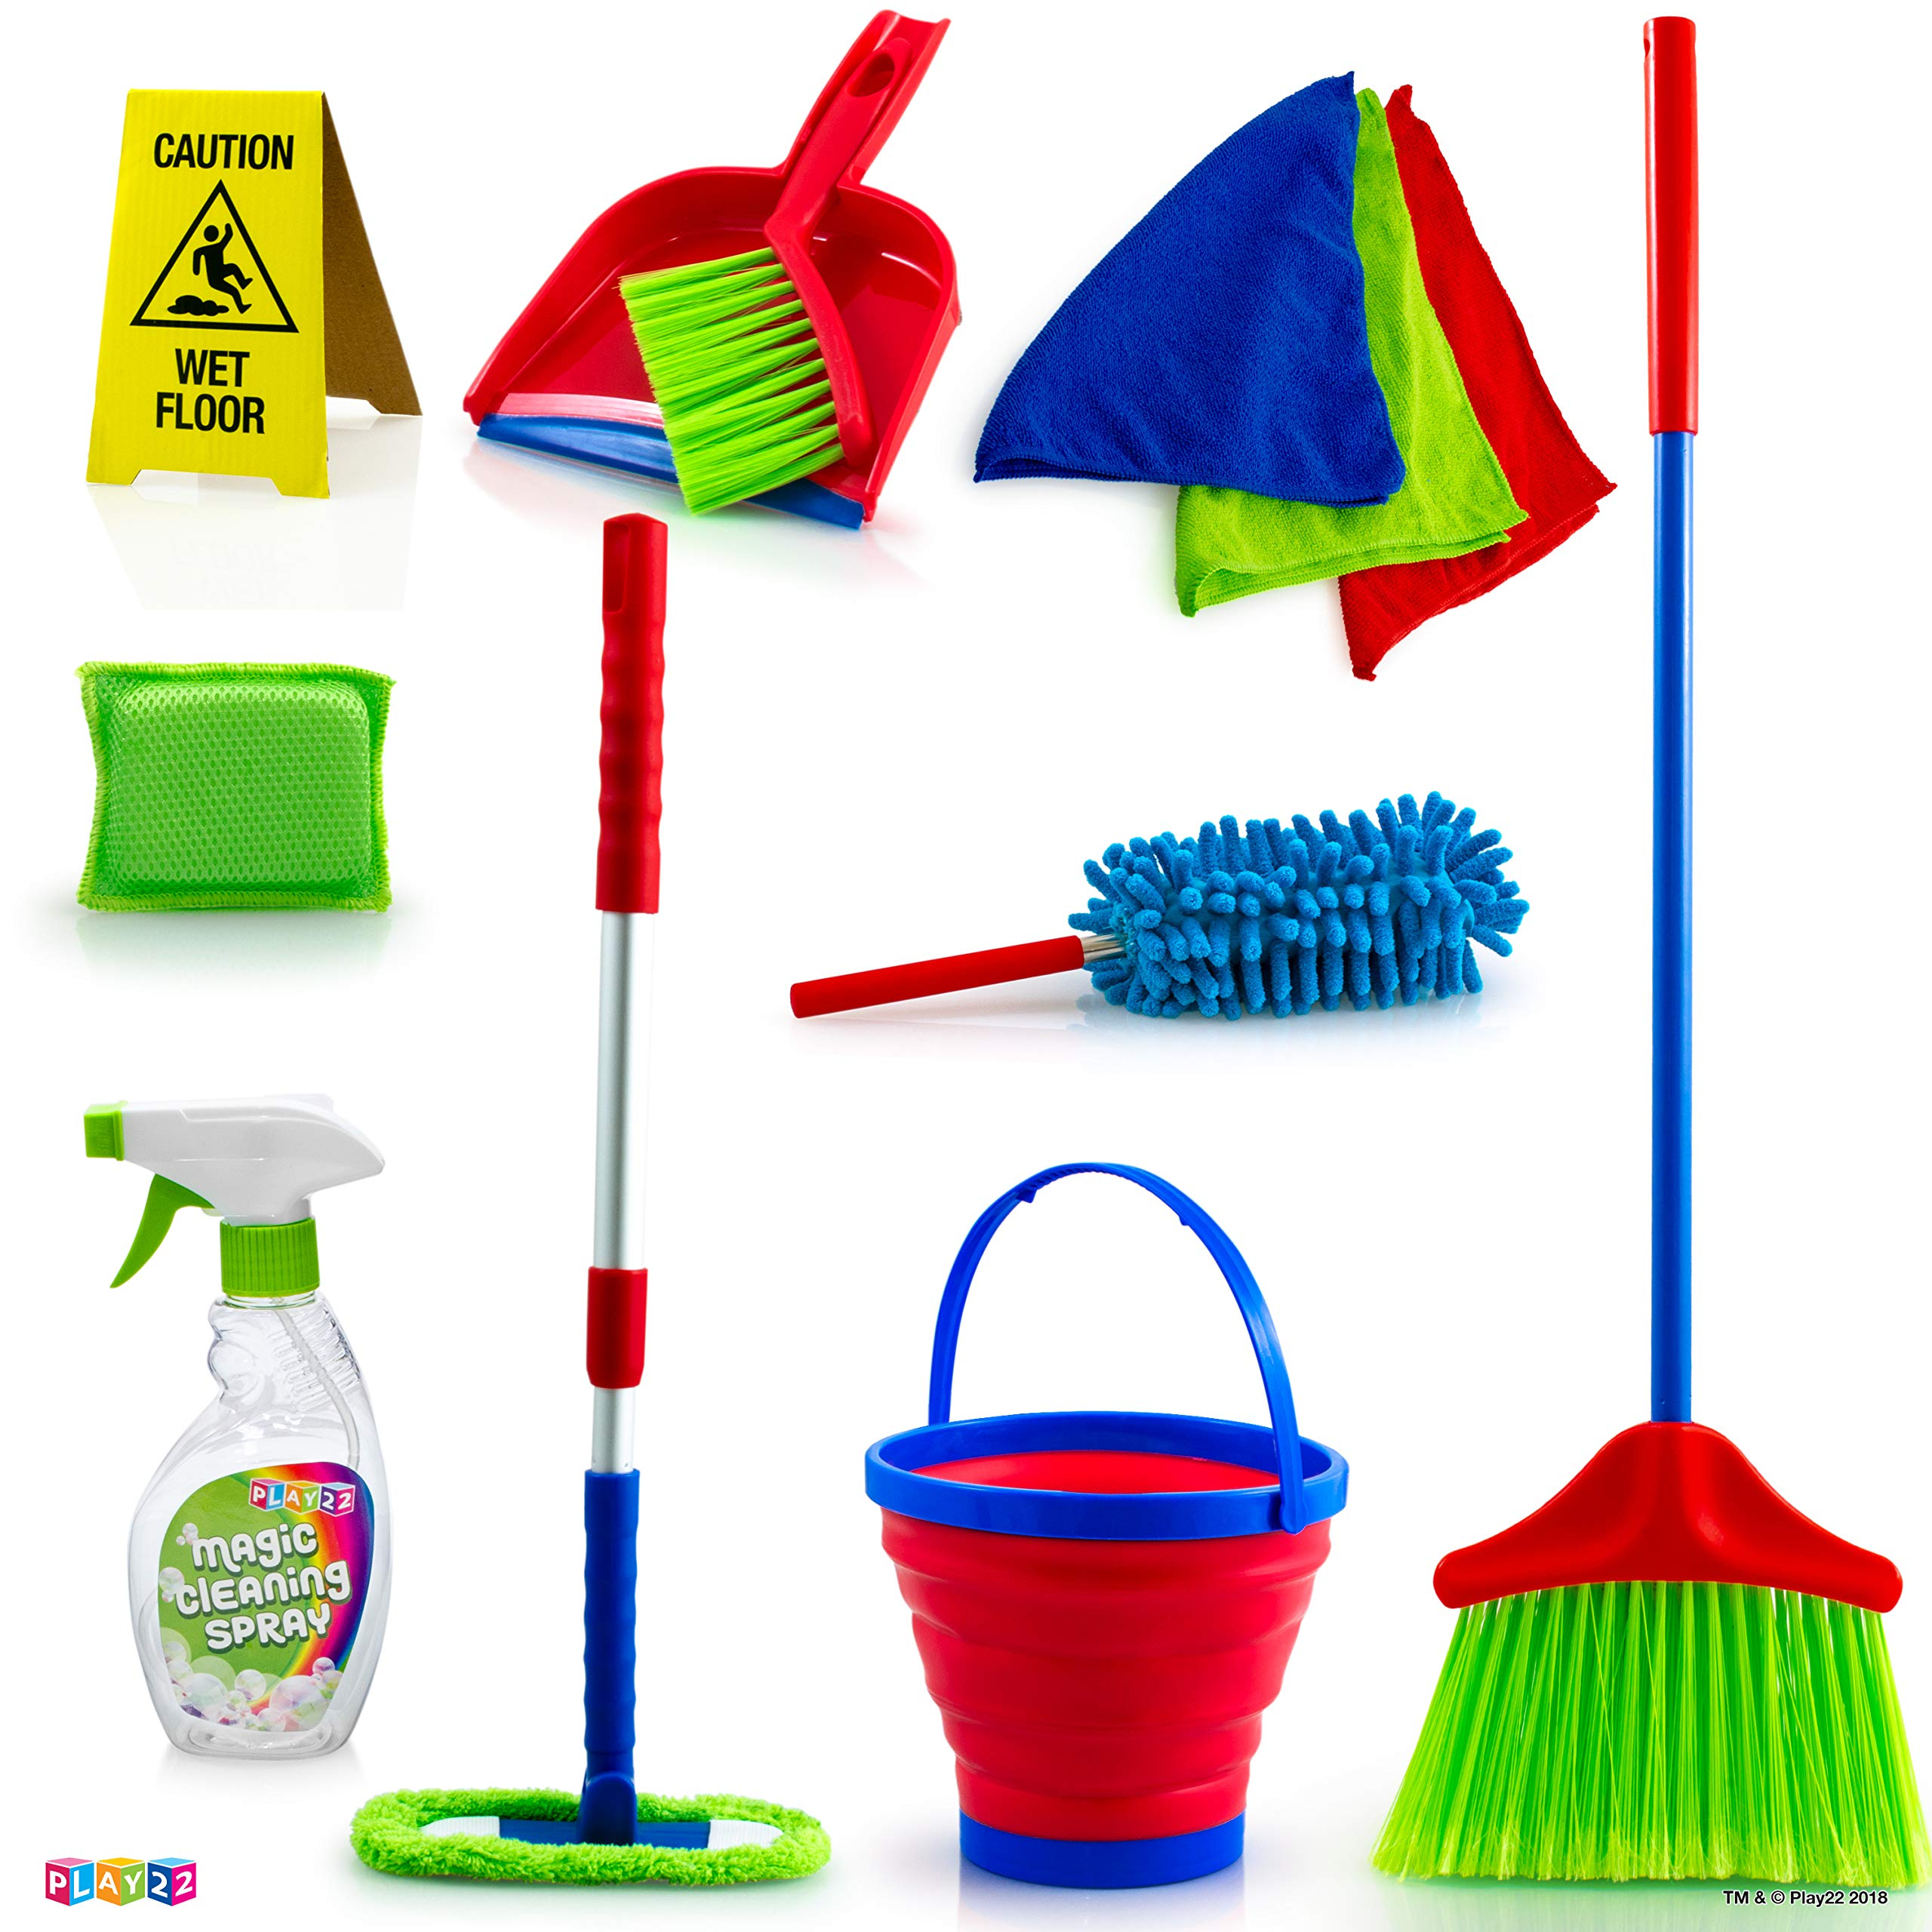 Kids Cleaning Set 12 Piece - Toy Cleaning Set Includes Broom, Mop, Brush, Dust Pan, Duster, Sponge, Clothes, Spray, Bucket, Caution Sign, - Toy Kitchen Toddler Cleaning Set - Original - by Play22 by Play22